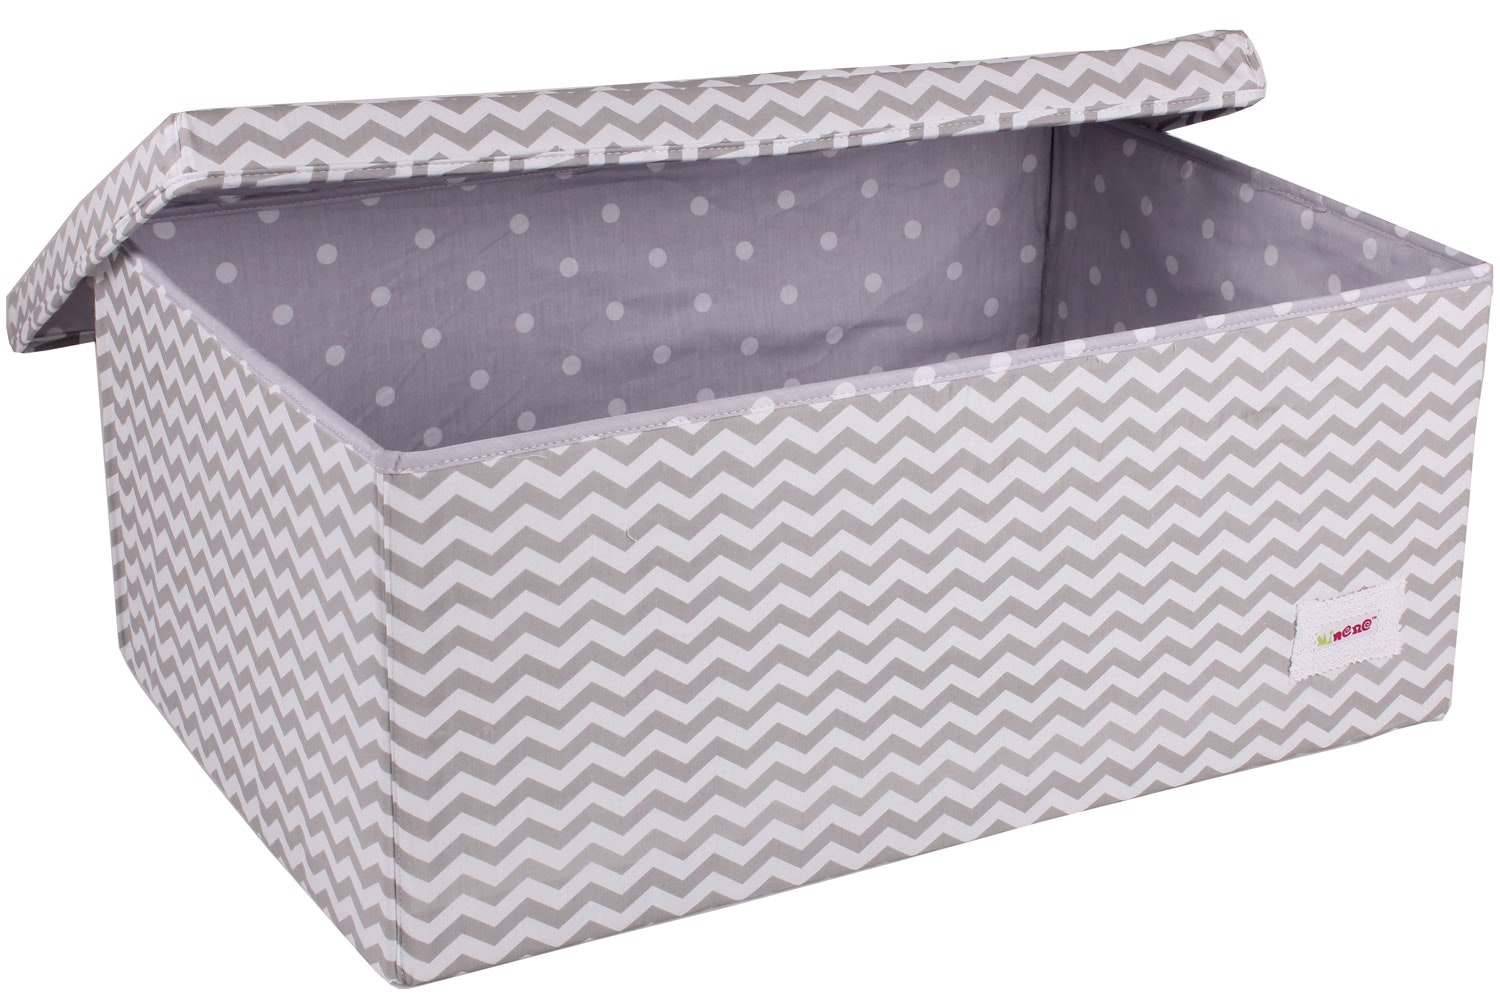 Minene Large Storage Box | Taupe Chevron